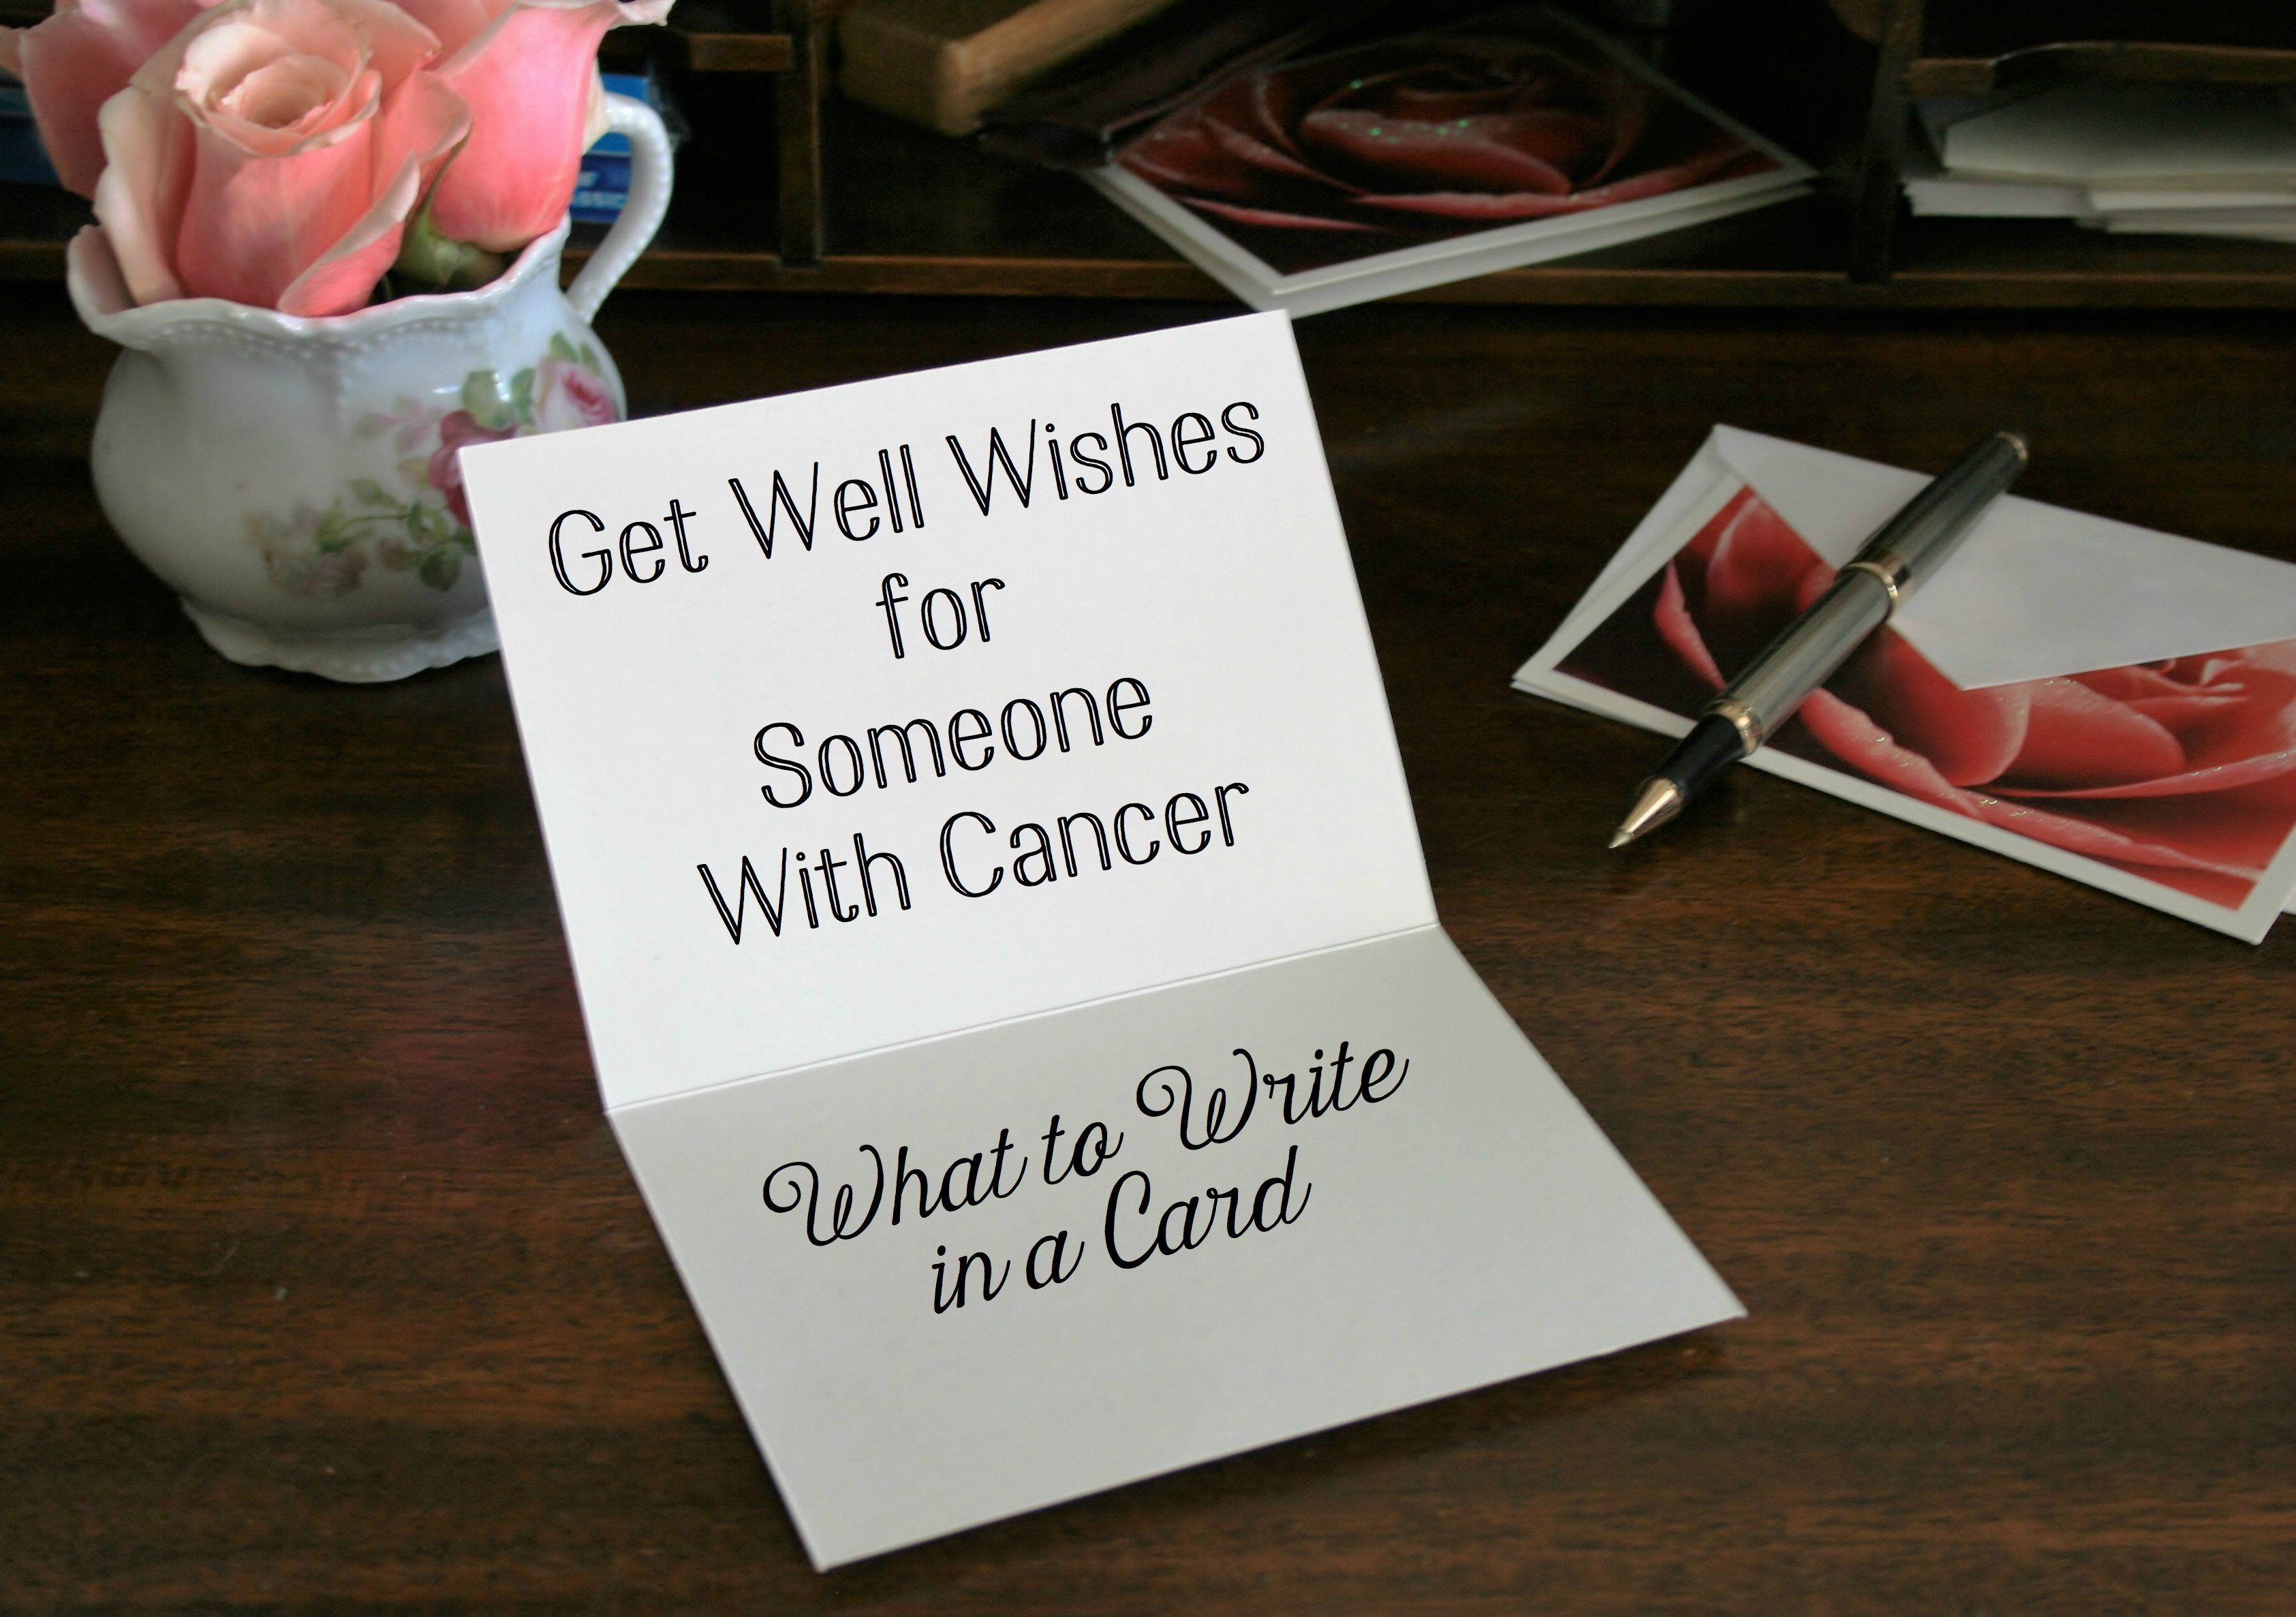 Unusual A Card Get Well Wishes A Card Cancer Support What To Write What To Write A Get Well Card After Surgery What To Write A Get Well Card A Friend Get Well Wishes What To Write cards What To Write In A Get Well Card